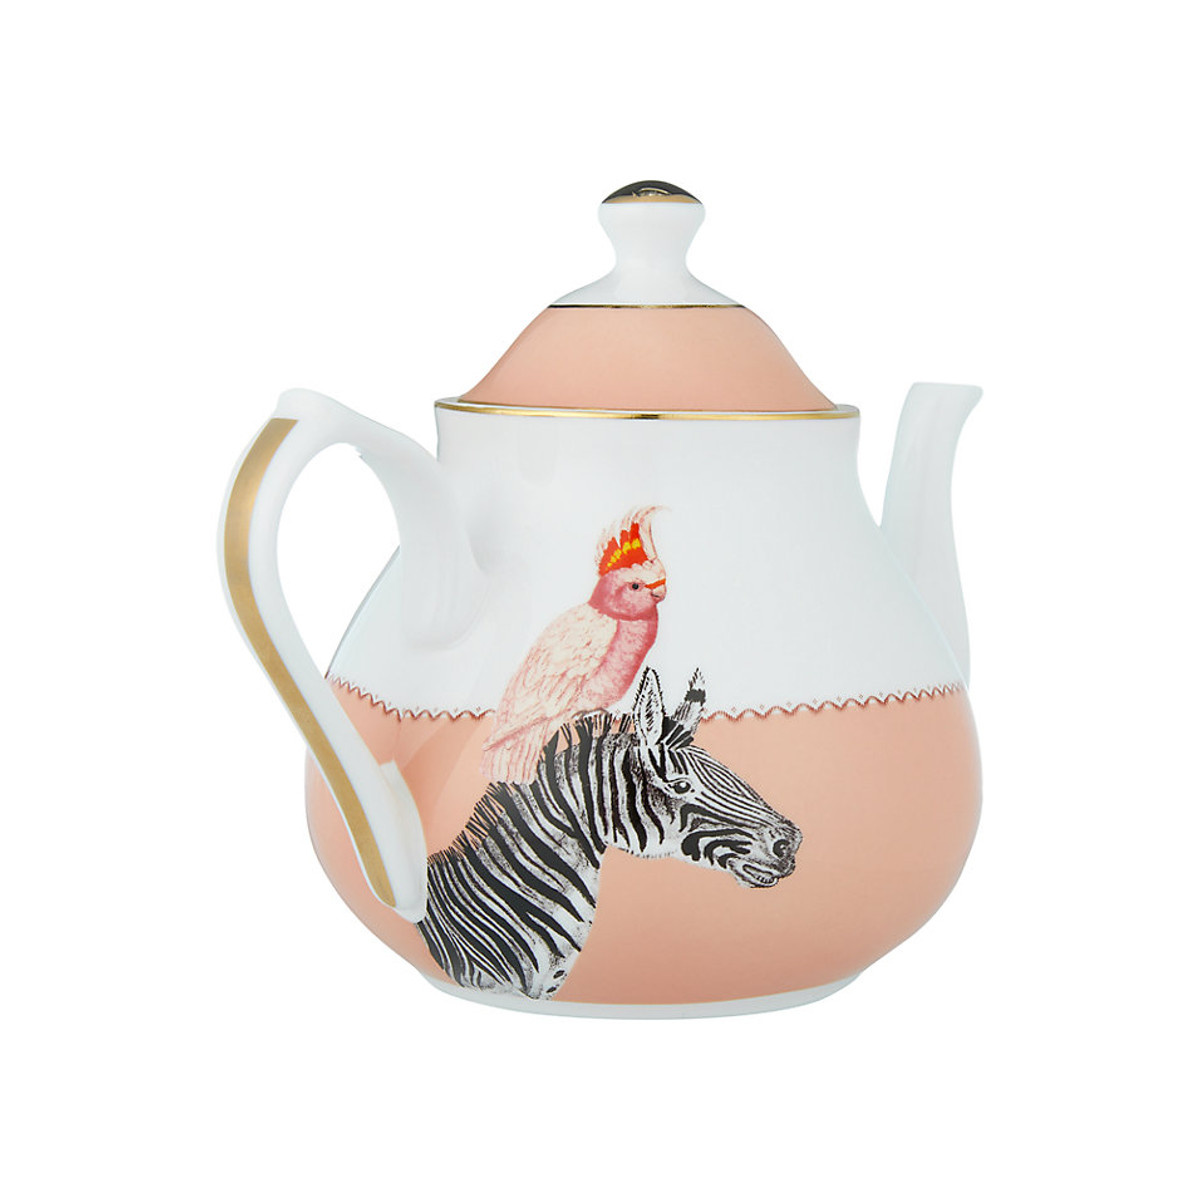 Yvonne Ellen London Yvonne Ellen London Carnival Animal Théière 1,6 Liter - Zèbre - Bone Chine Porcelaine